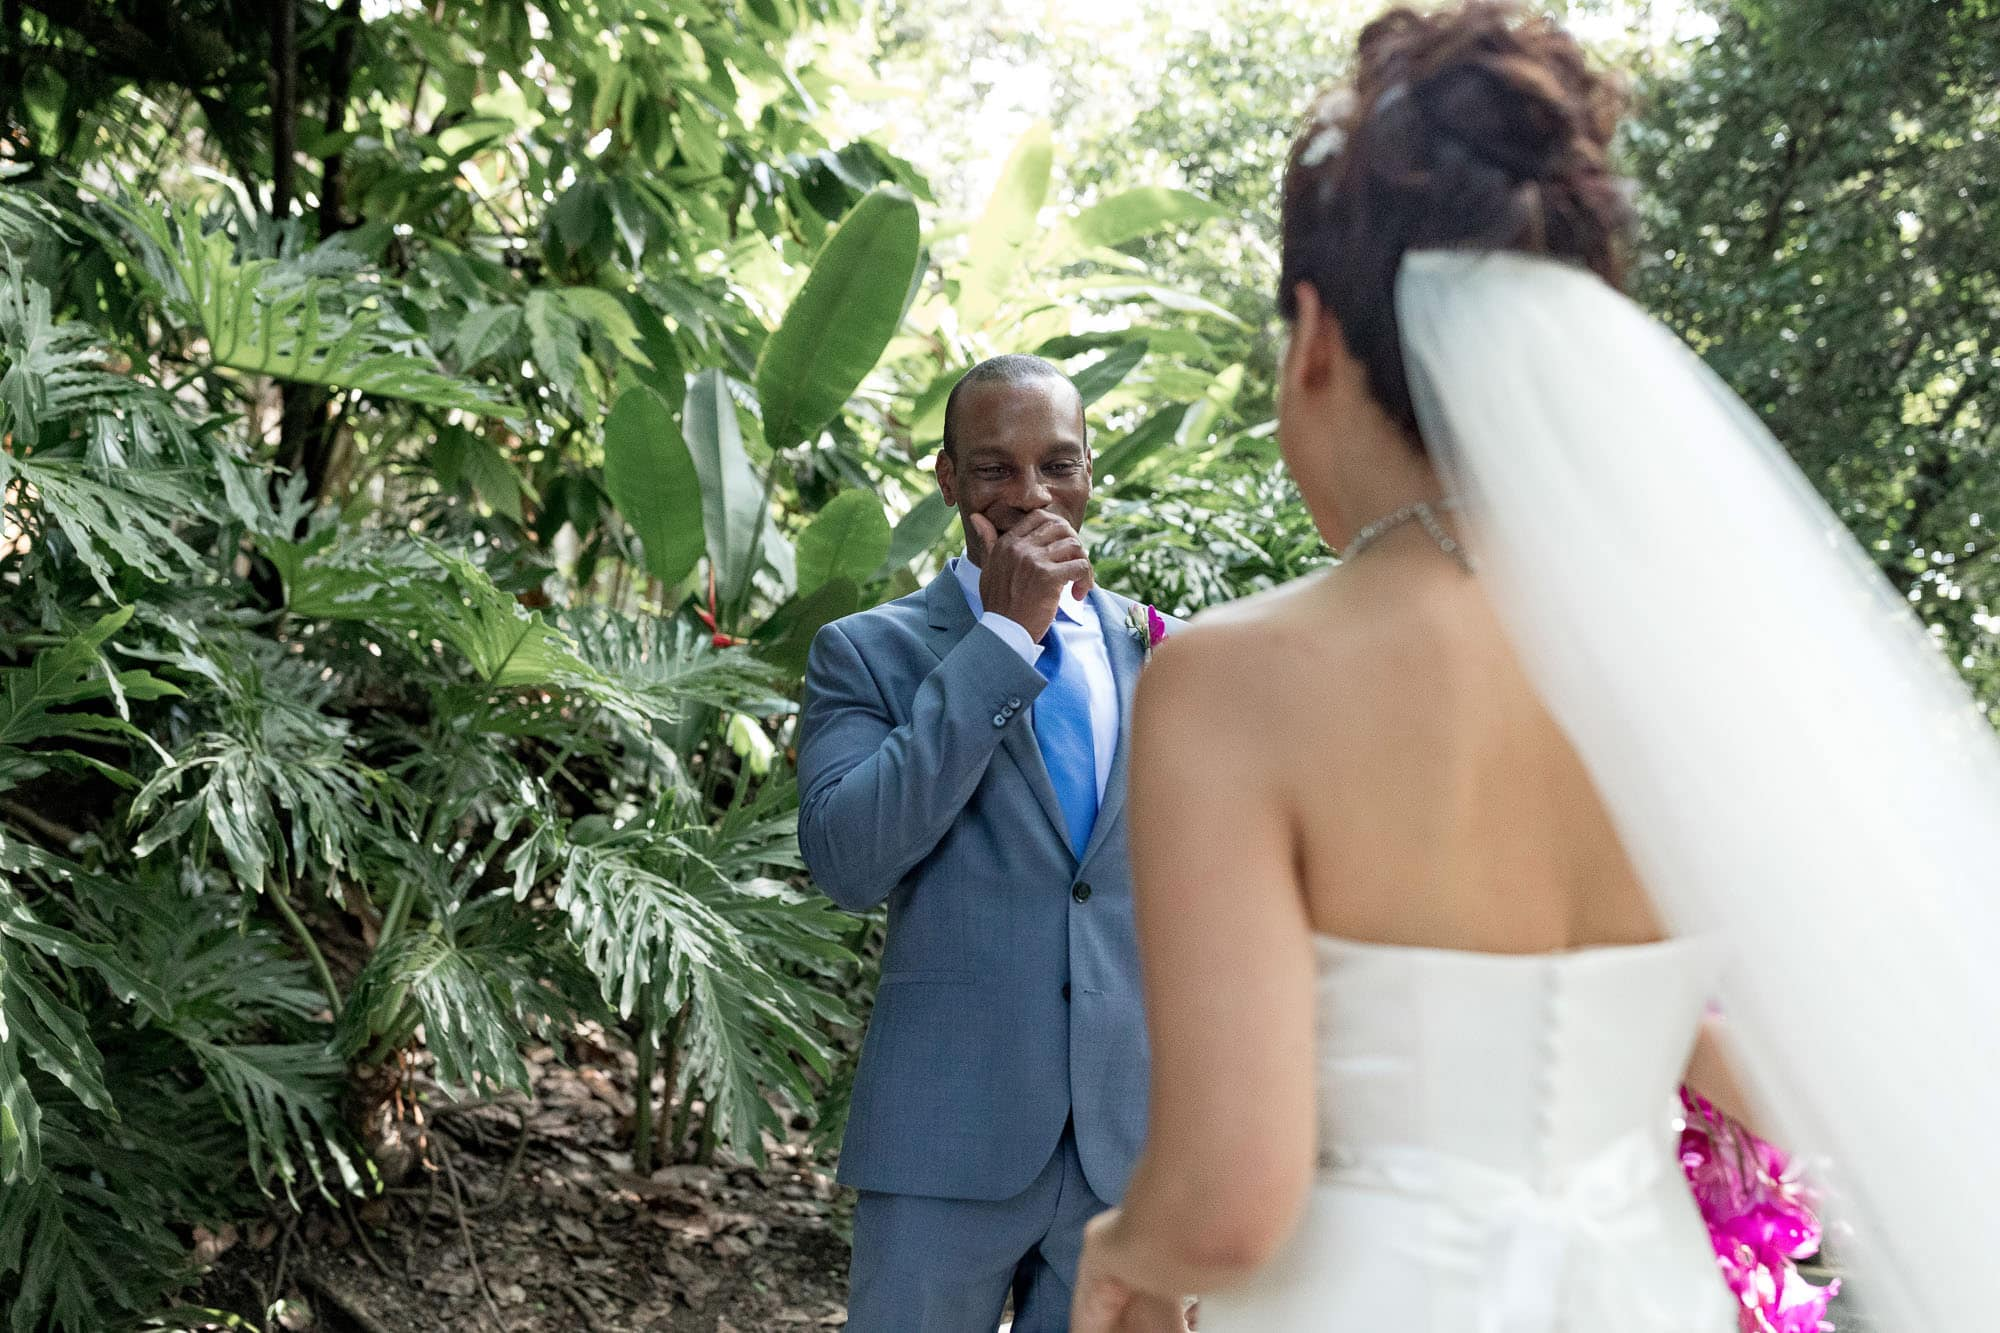 The groom's face when he sees her. Priceless!